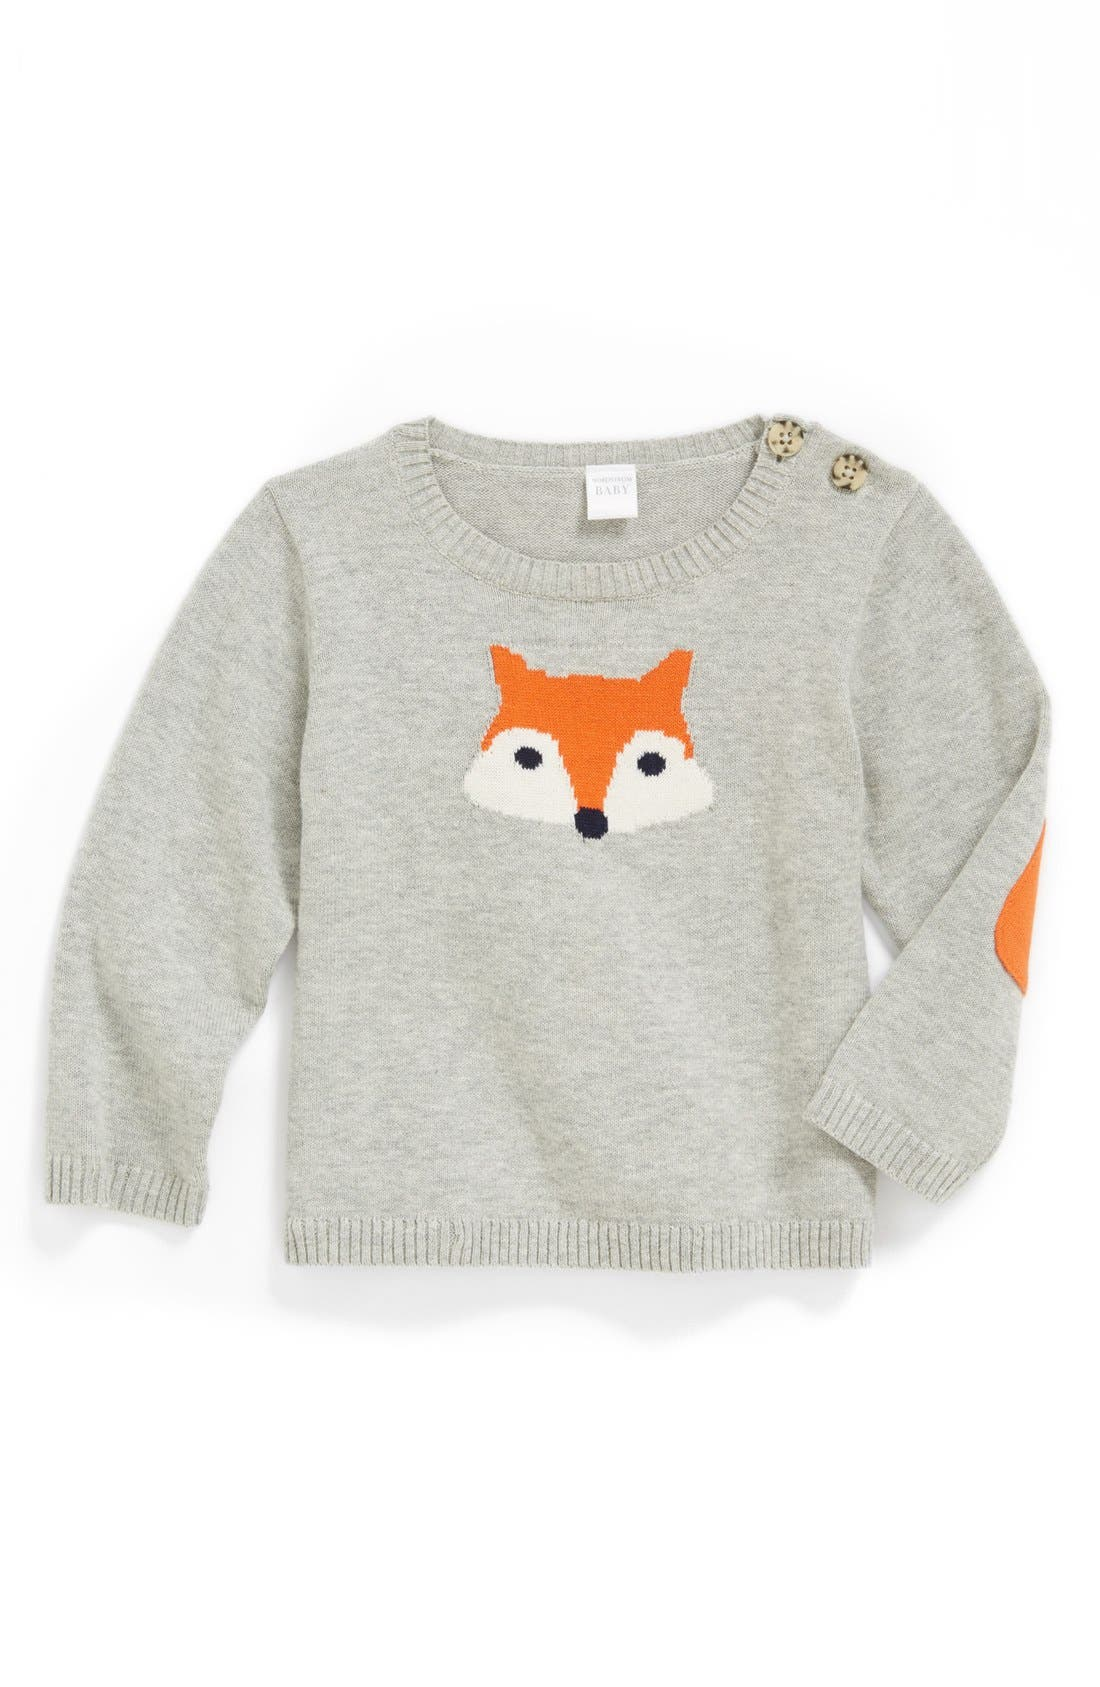 Alternate Image 1 Selected - Nordstrom Baby Intarsia Knit Sweater (Baby Boys)